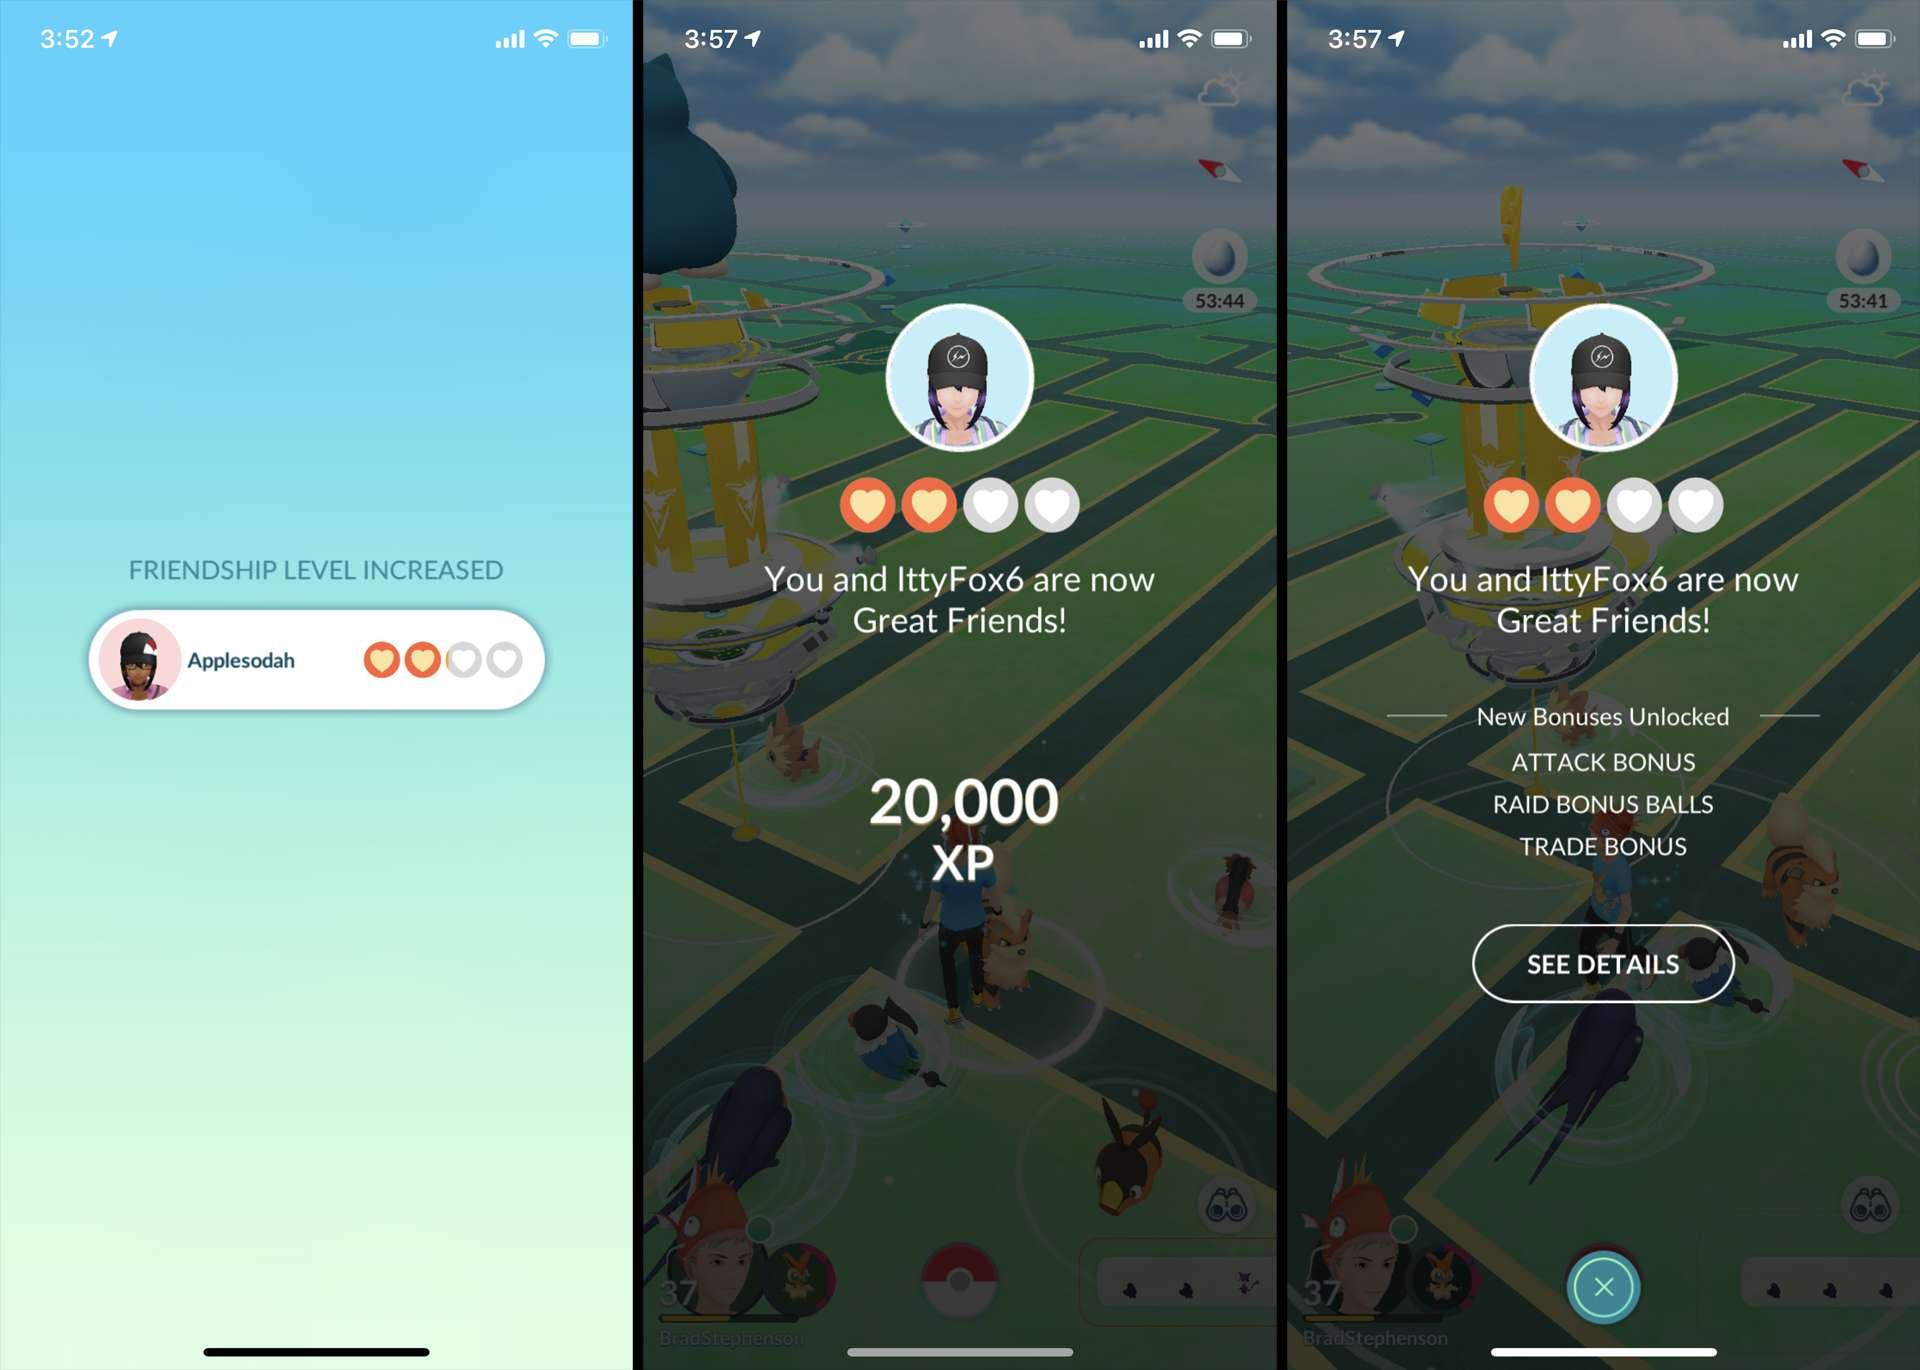 Screenshot of friend connections and XP in Pokemon GO.